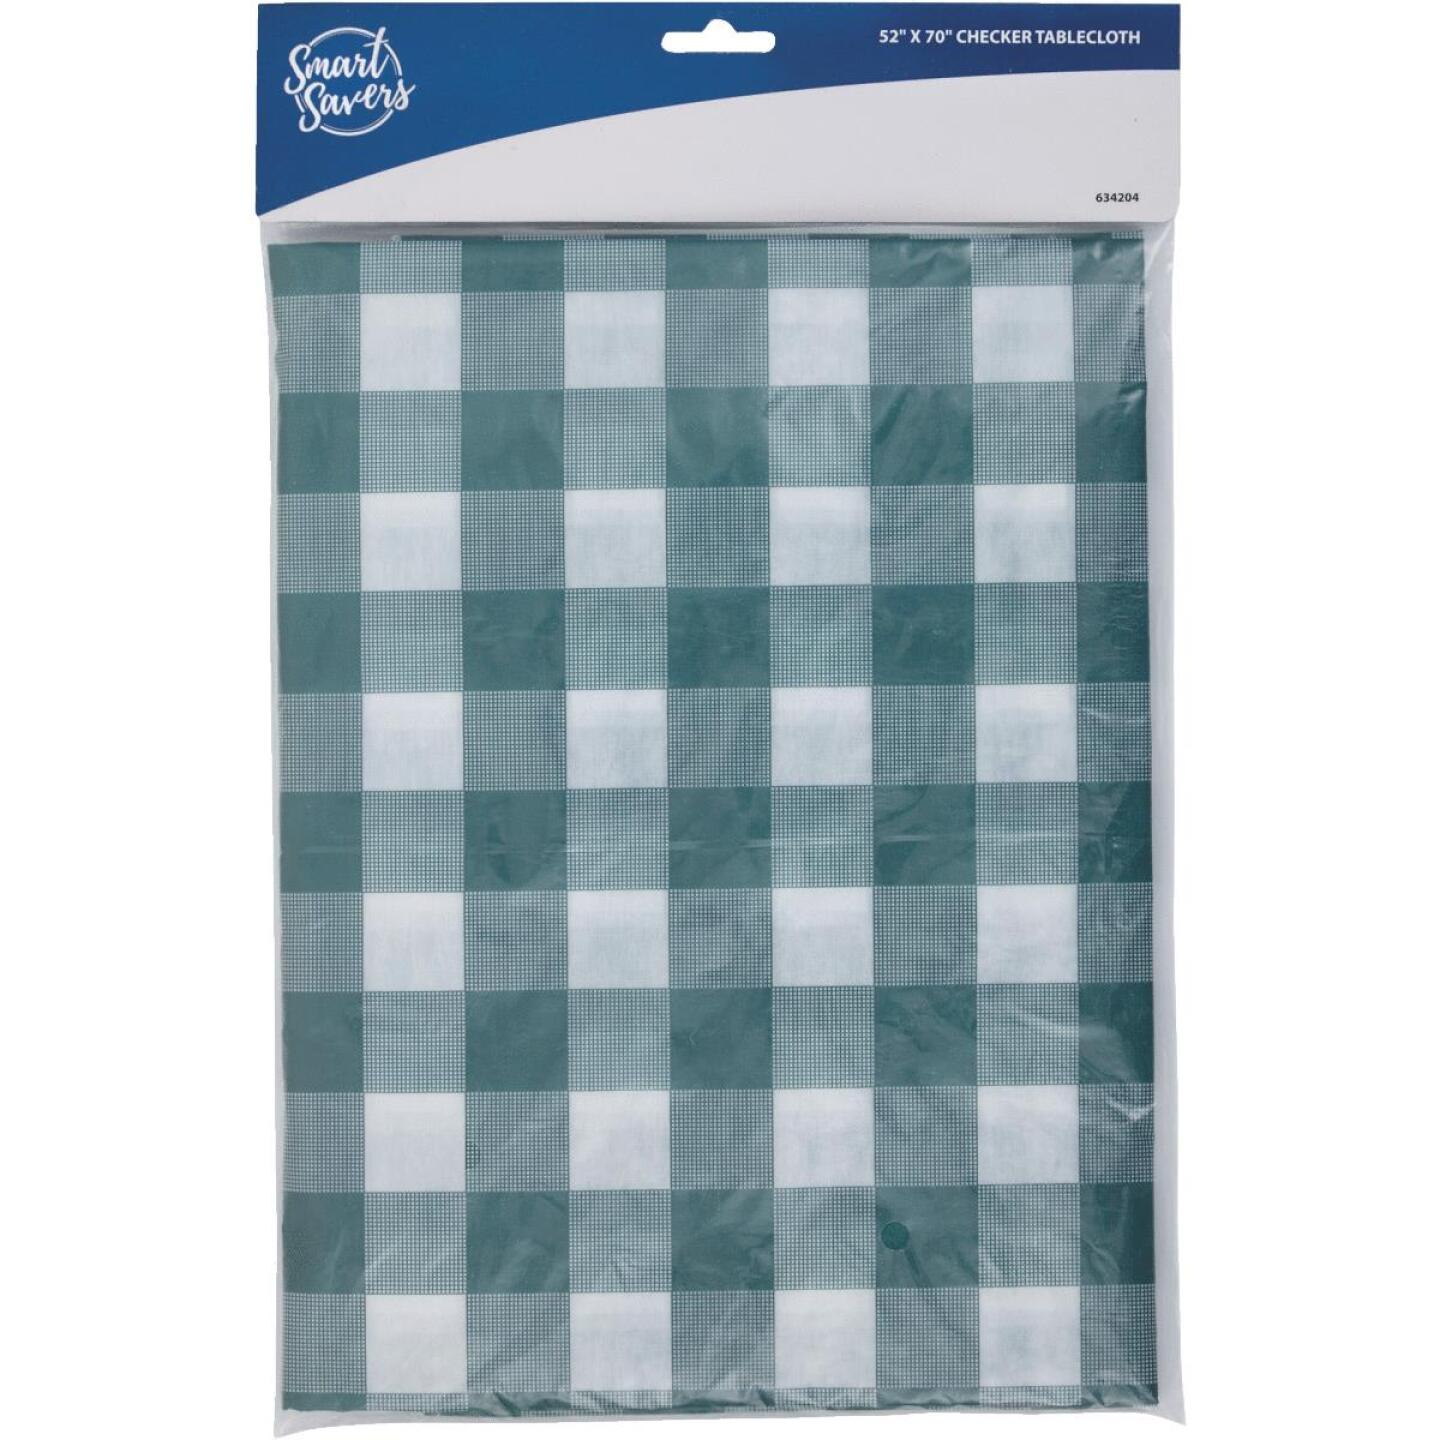 Smart Savers 52 In. W. x 70 In. L. Green & White Checkerboard Tablecloth Image 3